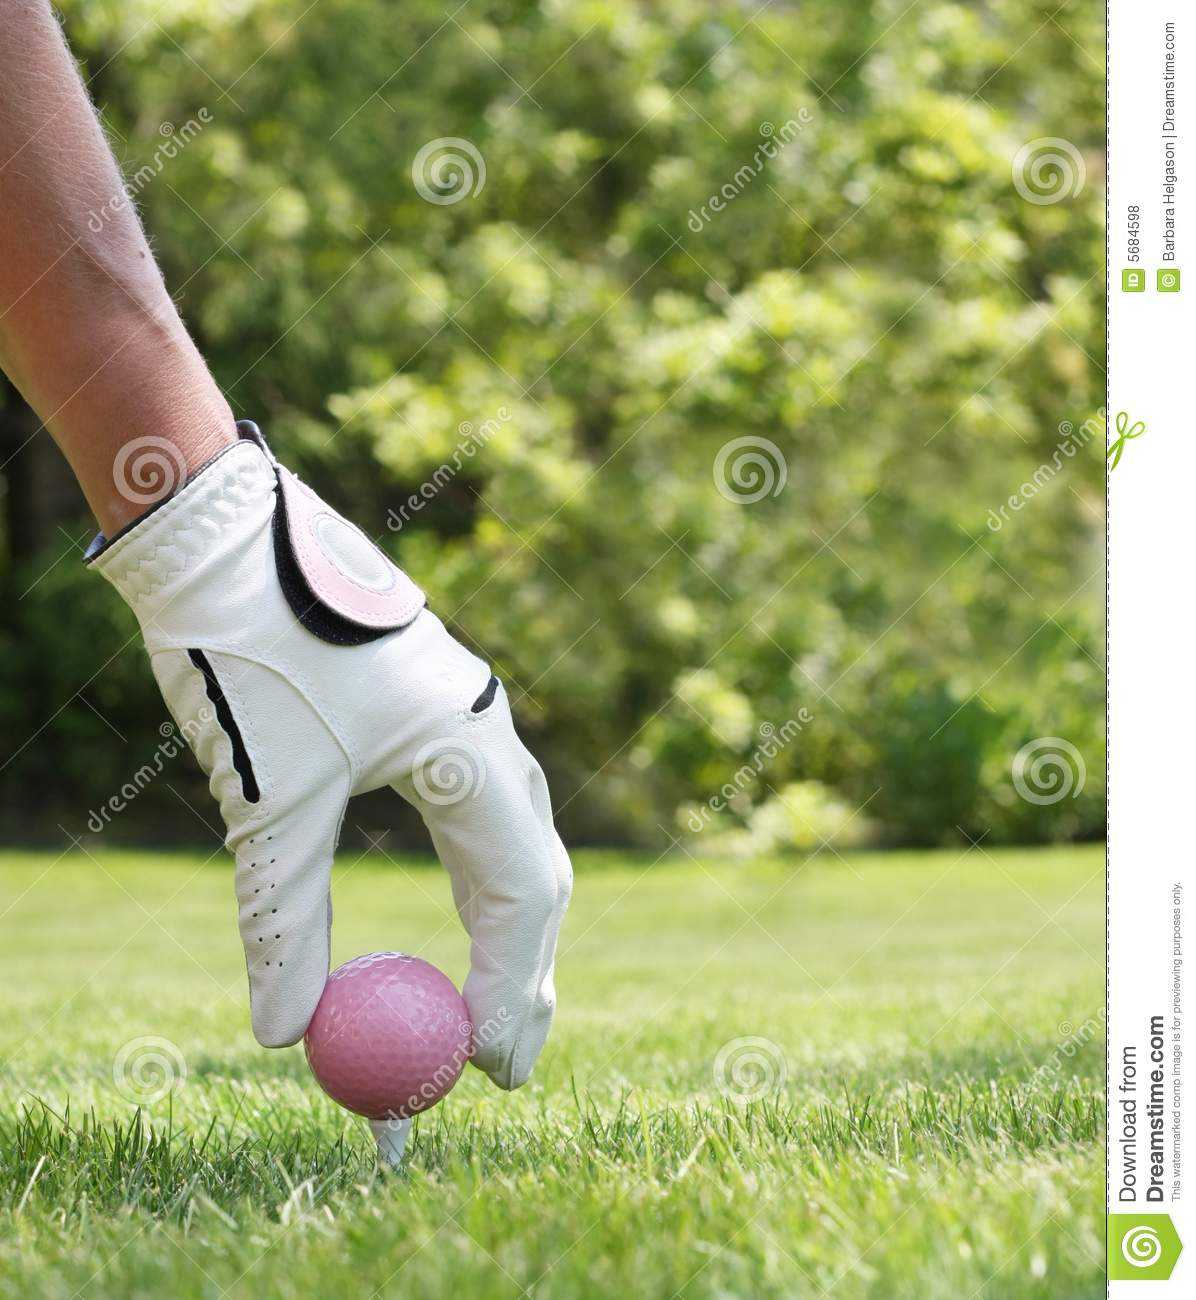 Ladies golf stock photo. Image of recreation, green ...